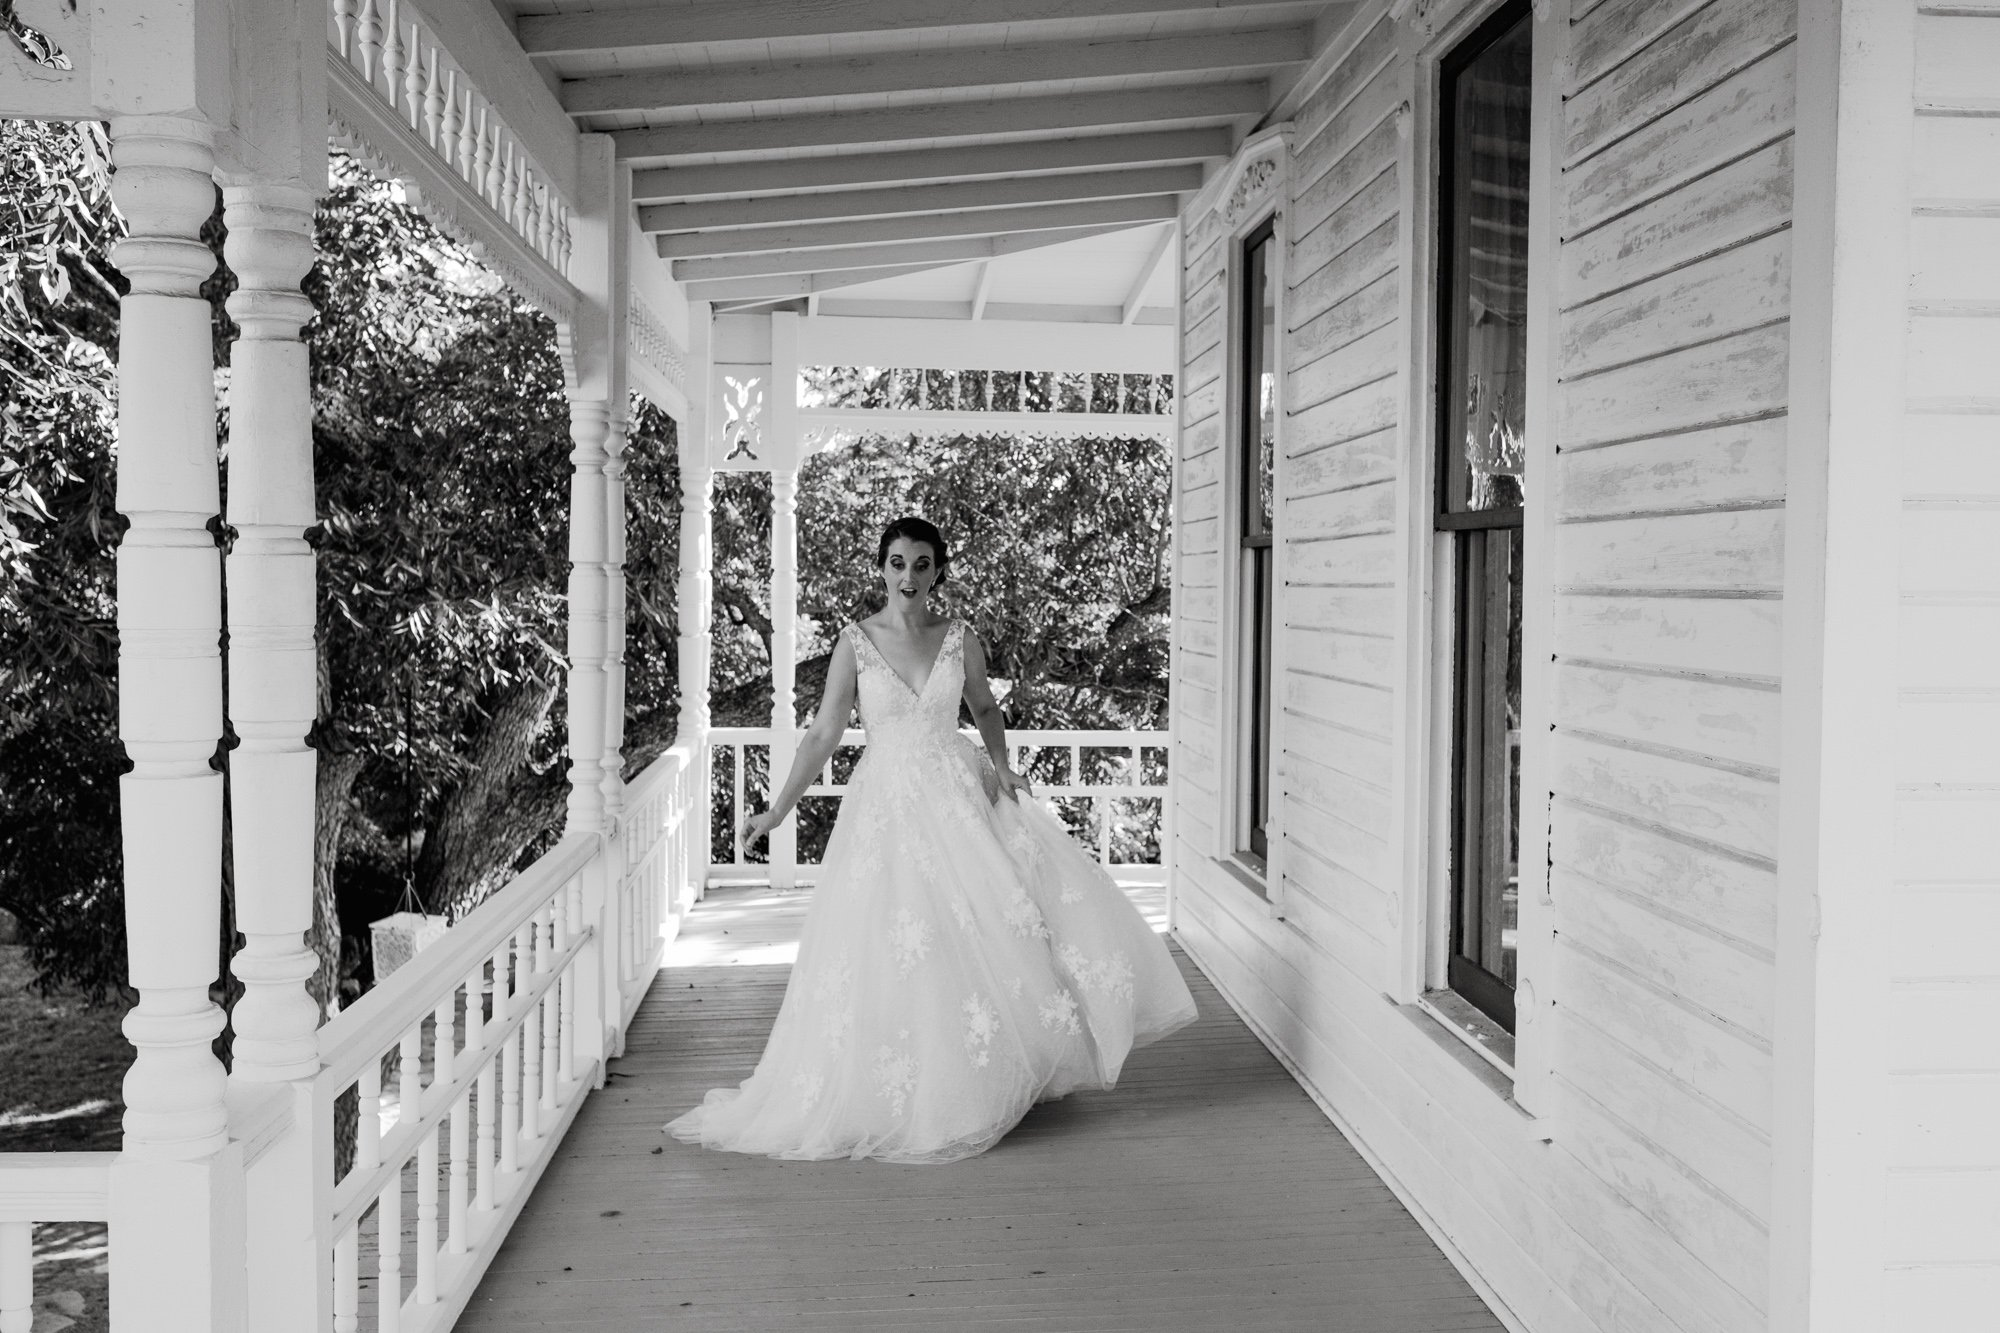 fun and goofy bridal portraits at the barr mansion in austin